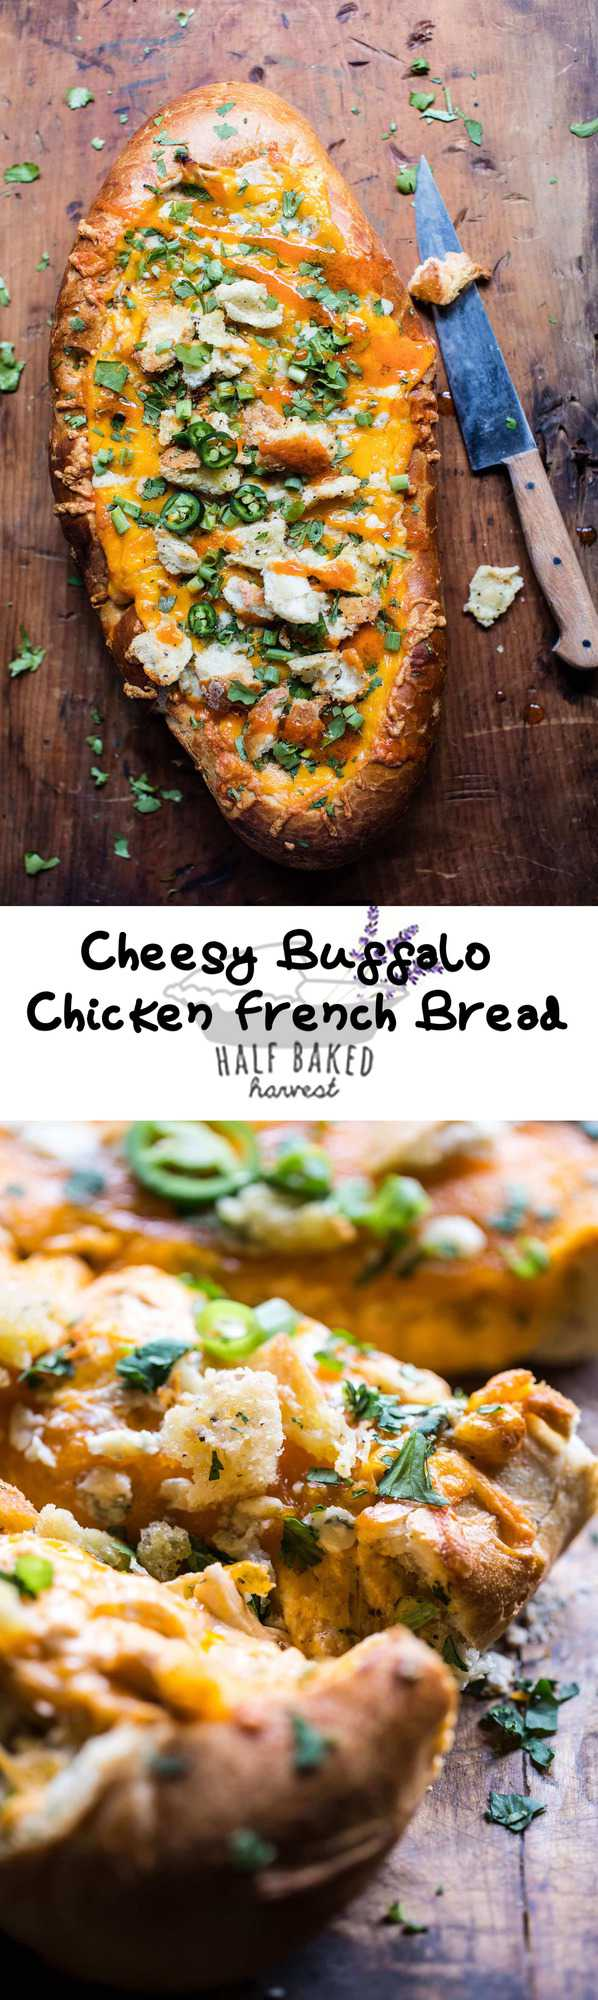 Cheesy Buffalo Chicken French Bread | halfbakedharvest.com @hbharvest